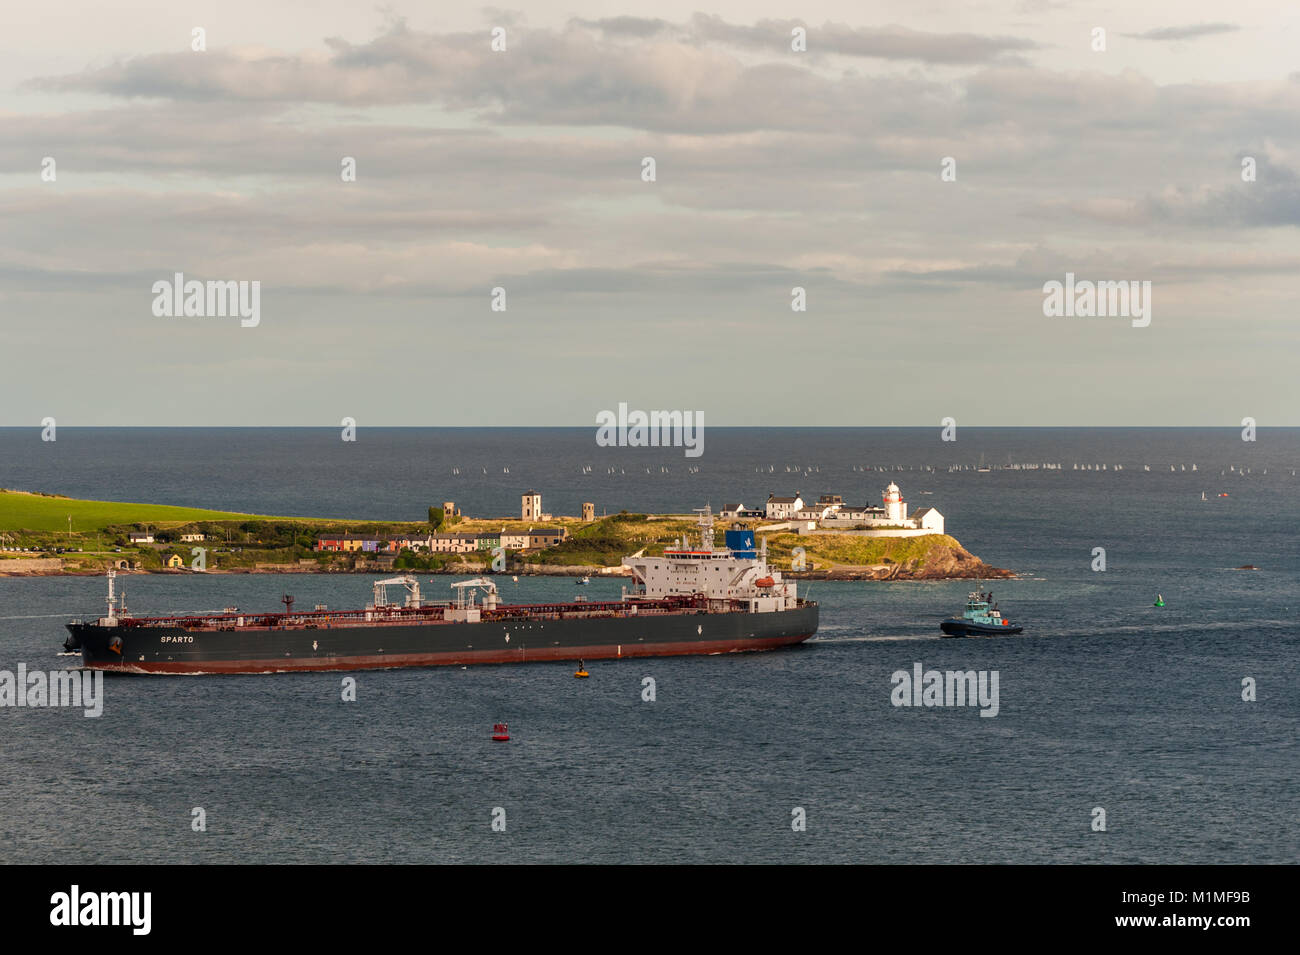 Crude Oil Tanker 'Sparto' passes Roches Point lighthouse, County Cork, Ireland on her way to Whitegate Oil - Stock Image